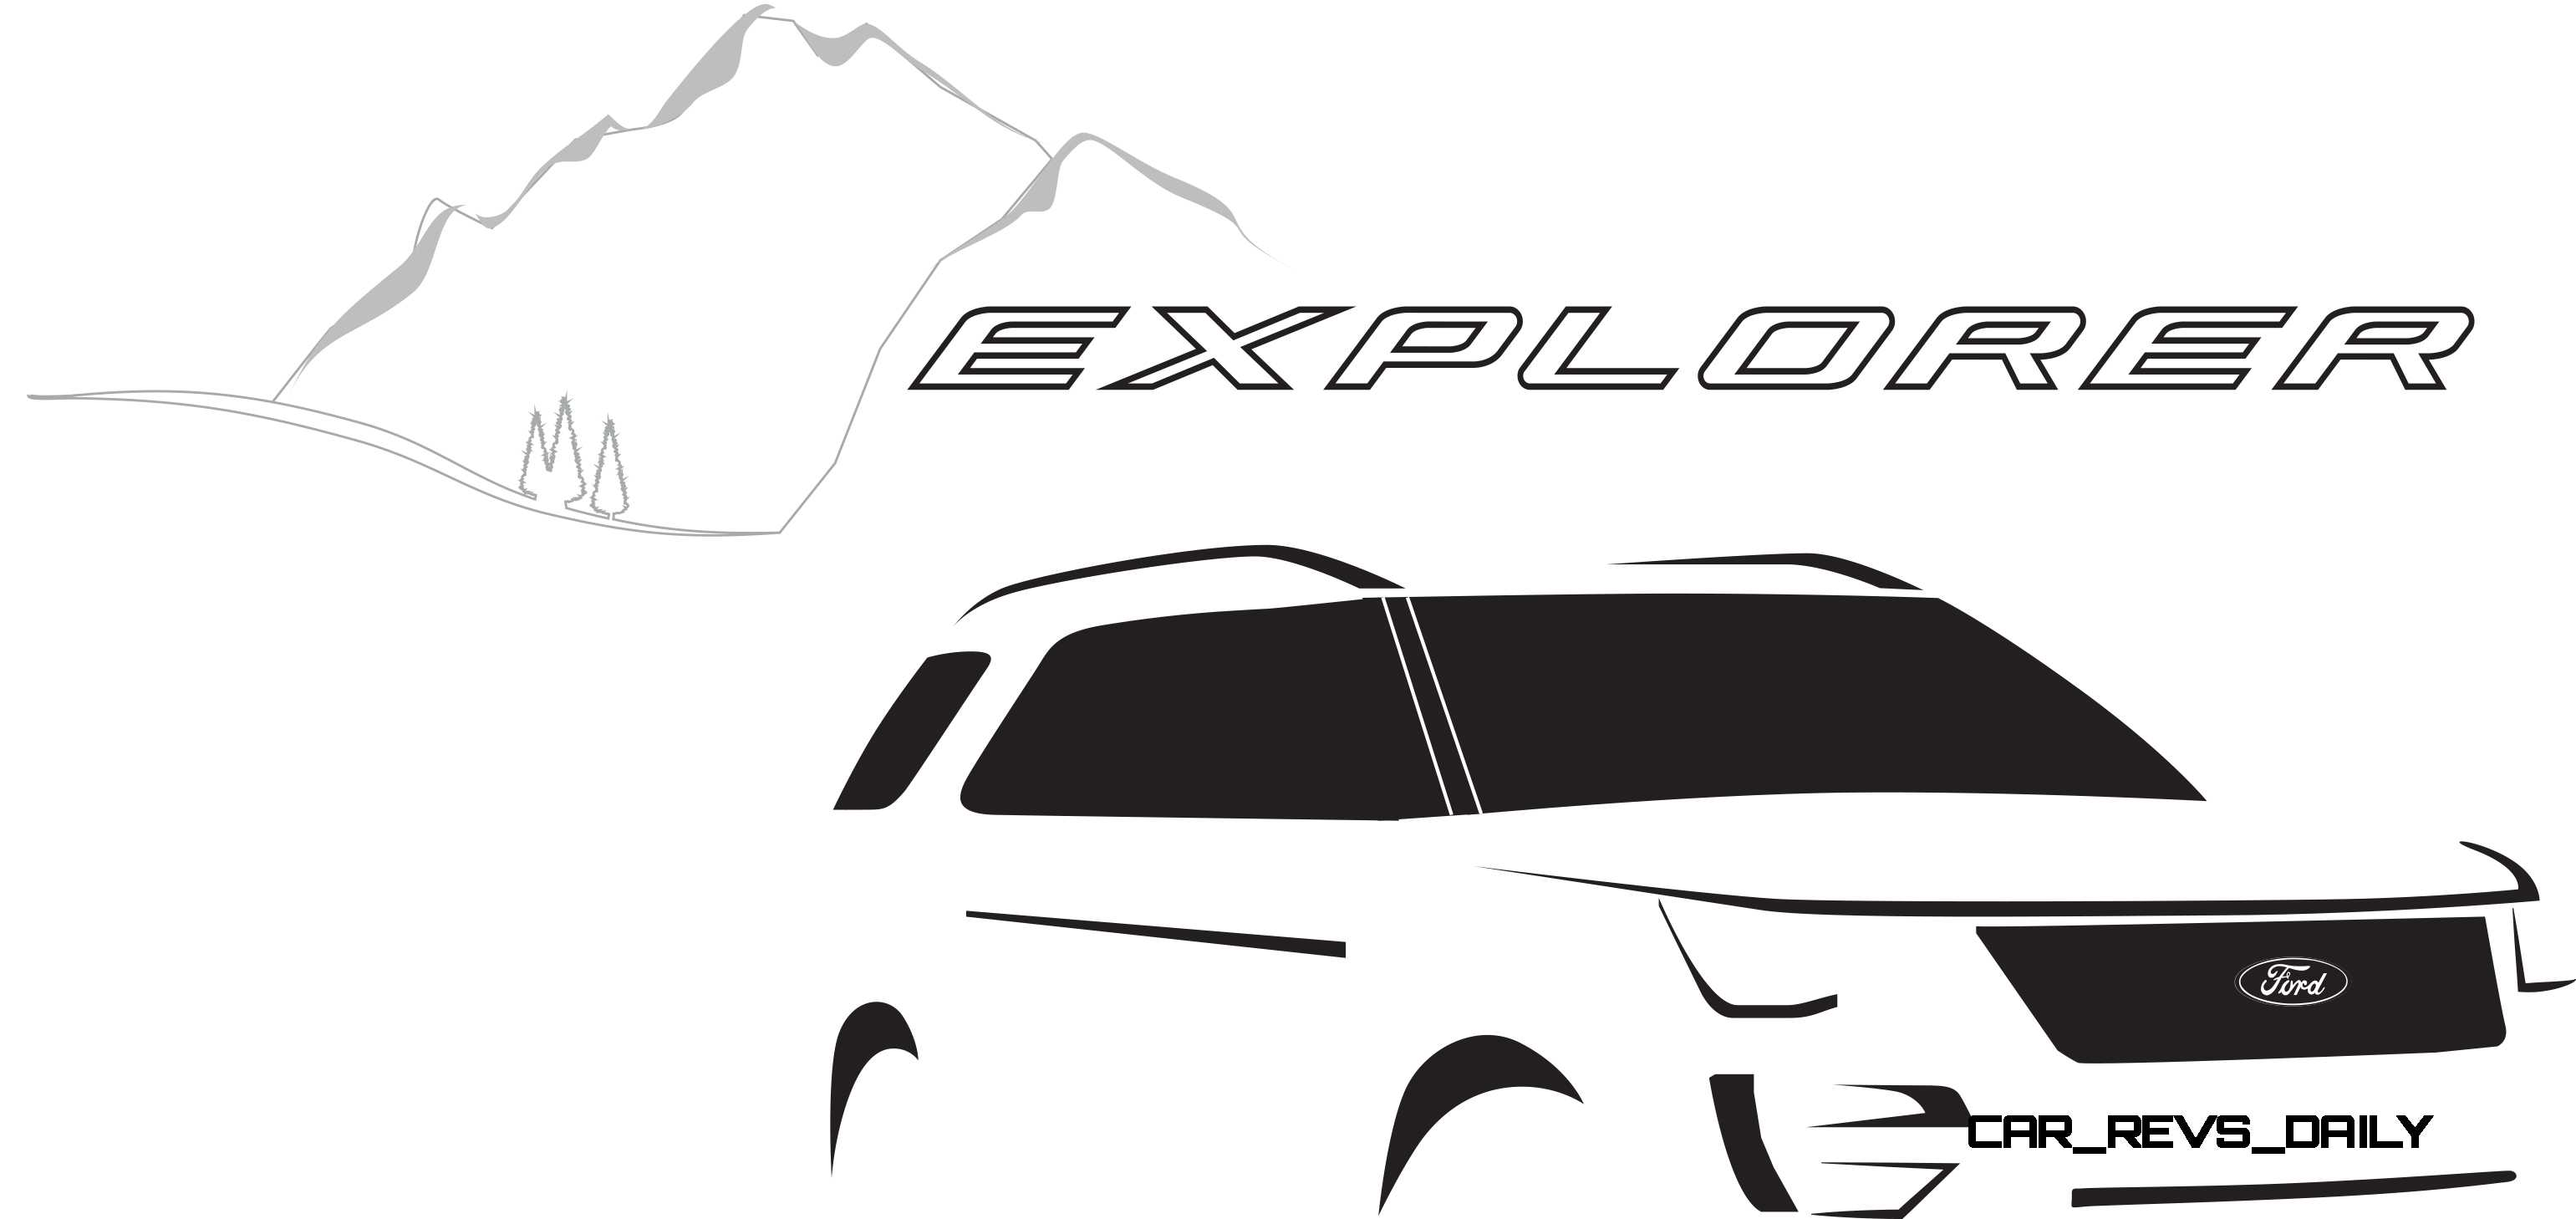 2016 ford explorer revealed with new engines  fresh